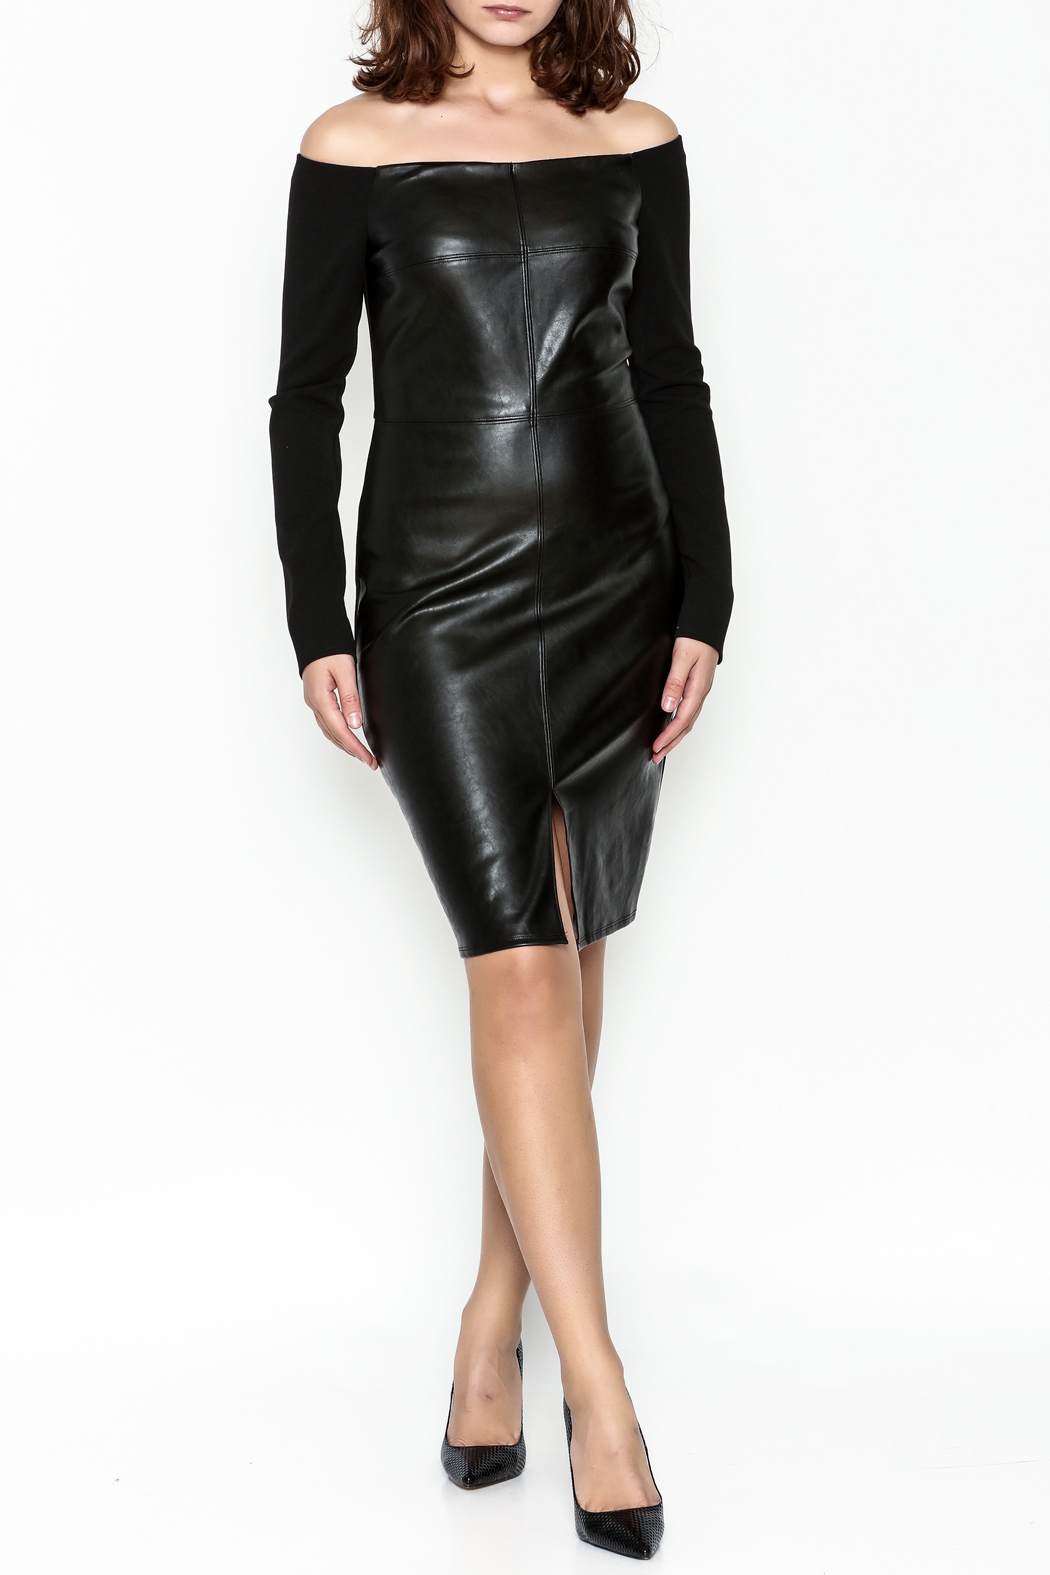 Do & Be Faux Leather Dress - Side Cropped Image